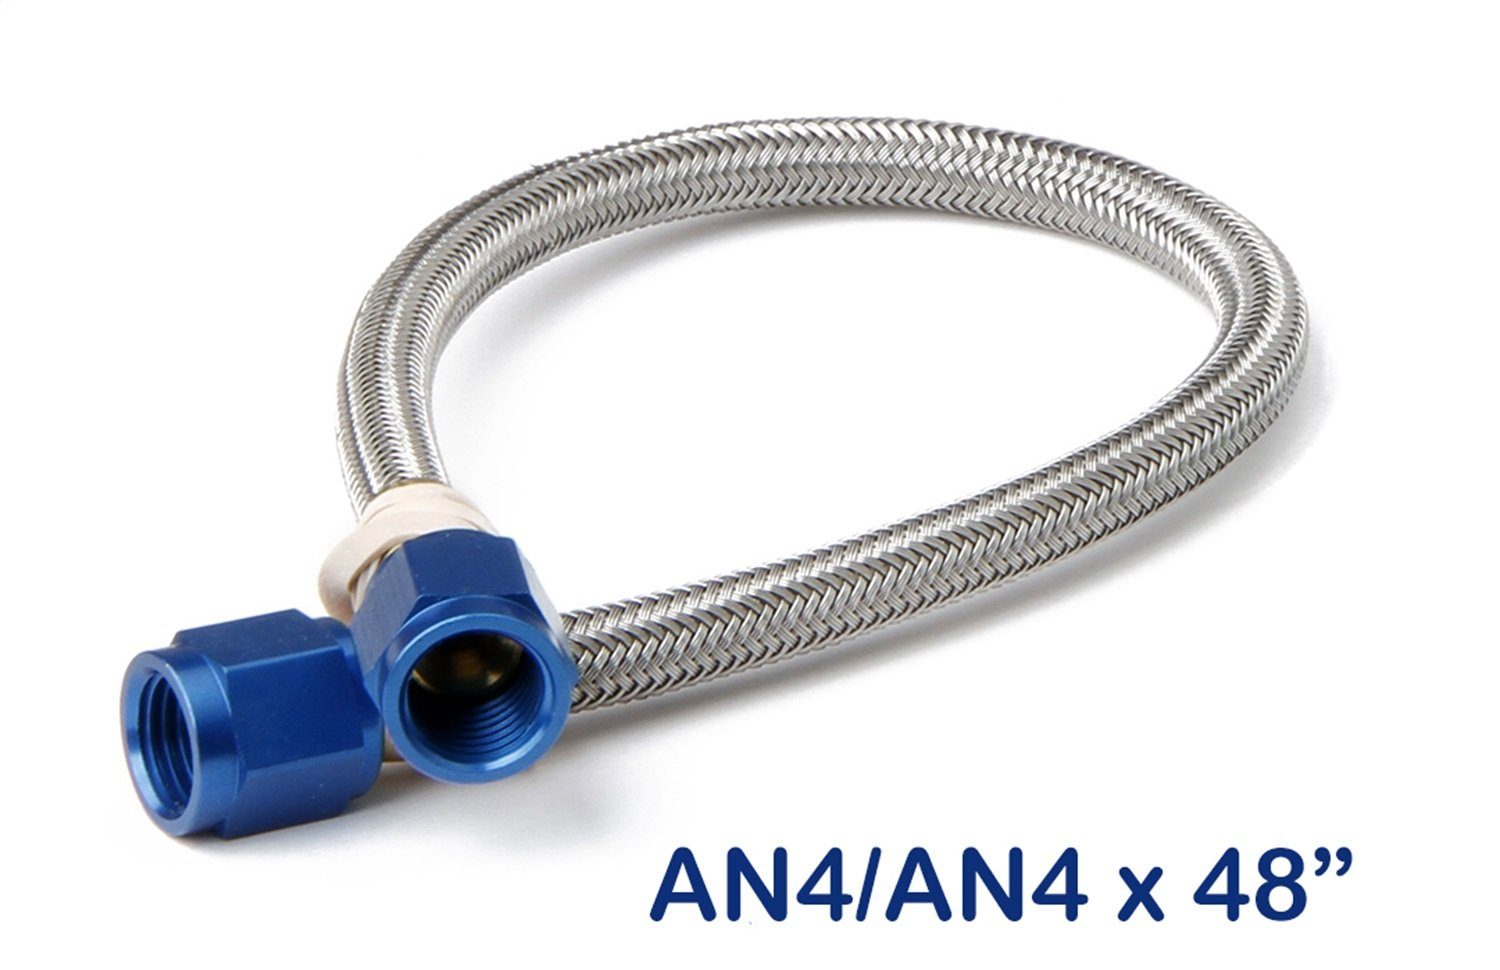 NOS 15250NOS Stainless Steel 4' Braided Hose with -4AN Blue Fittings NOS/Nitrous Oxide System